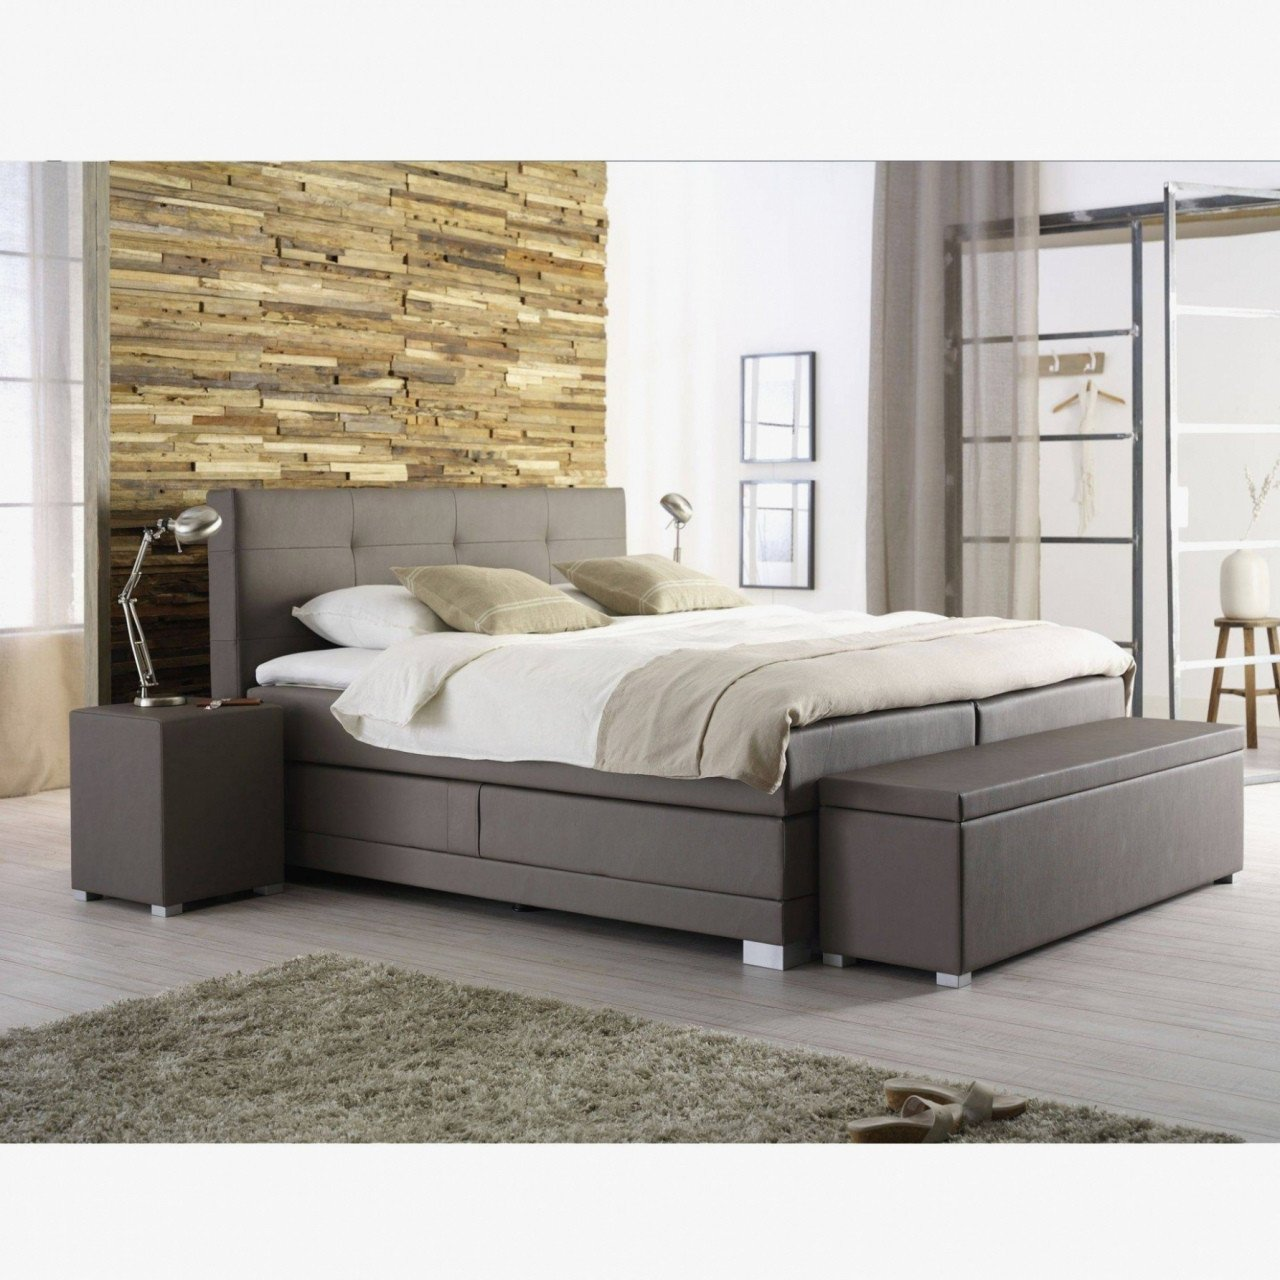 Twin Bedroom Set Ikea Lovely Bed with Drawers — Procura Home Blog